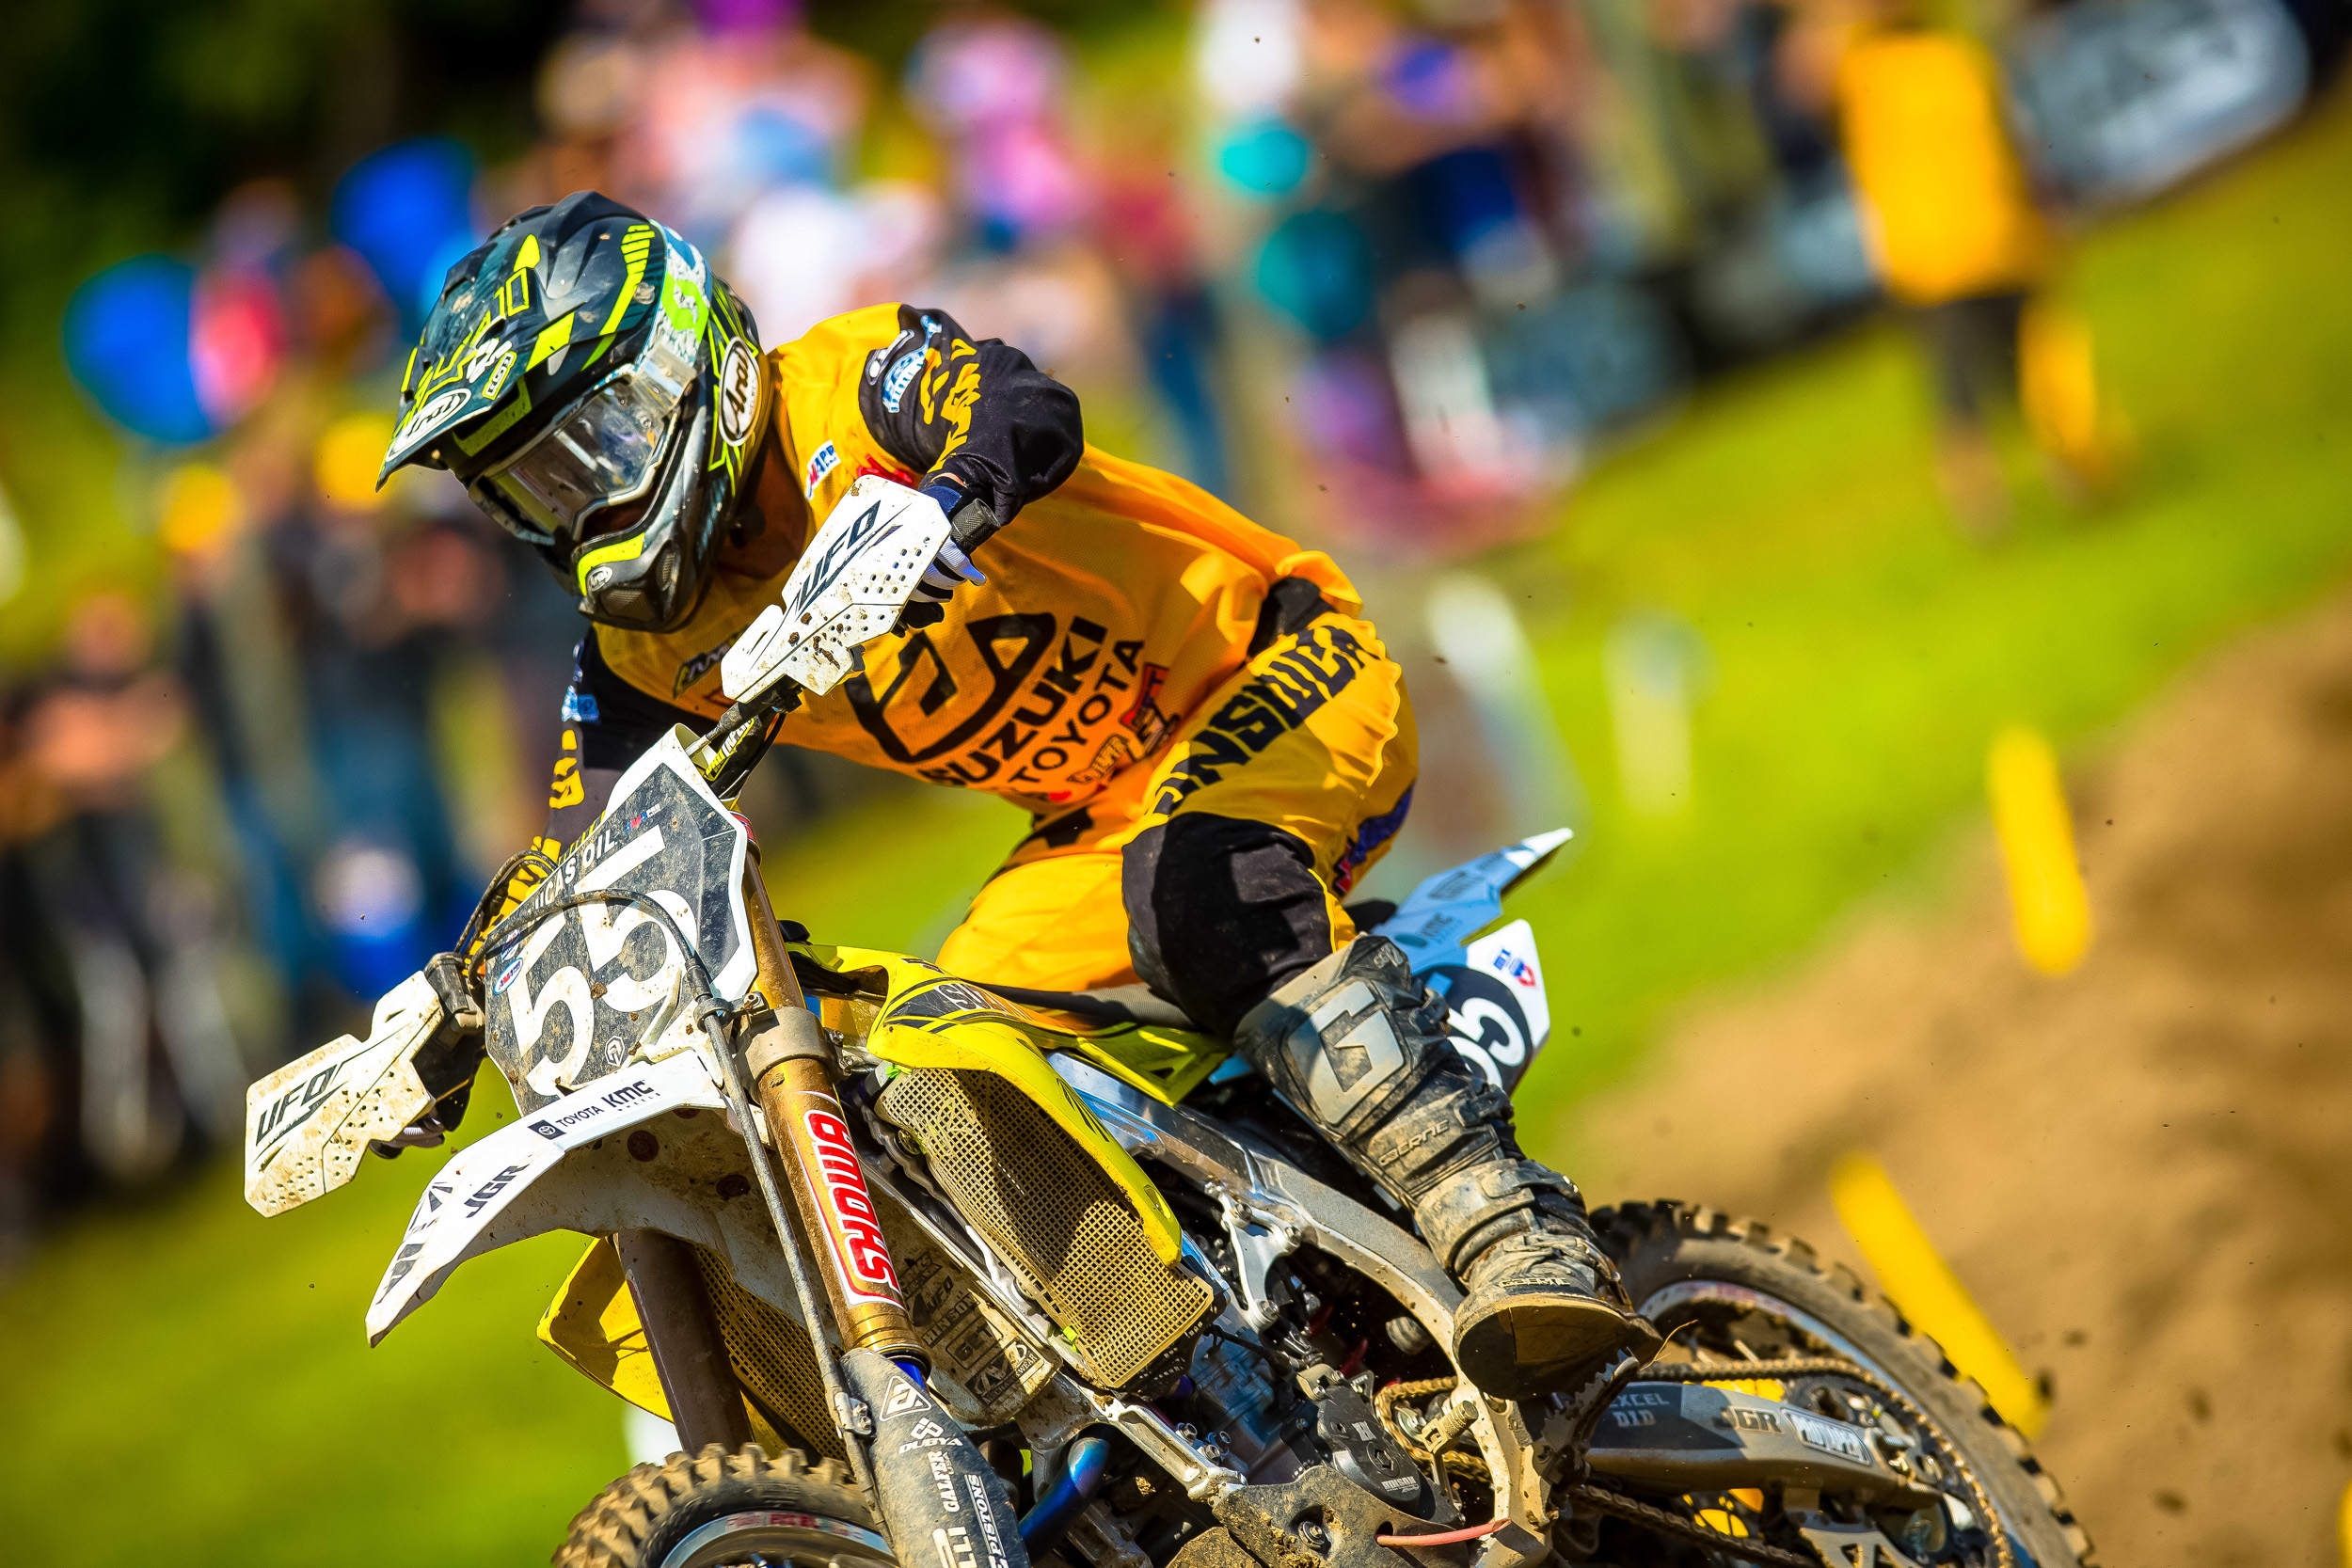 Kyle Peters (#55) illuminates the track with his historically-inspired wrapped RM-Z250 and all-yellow gear